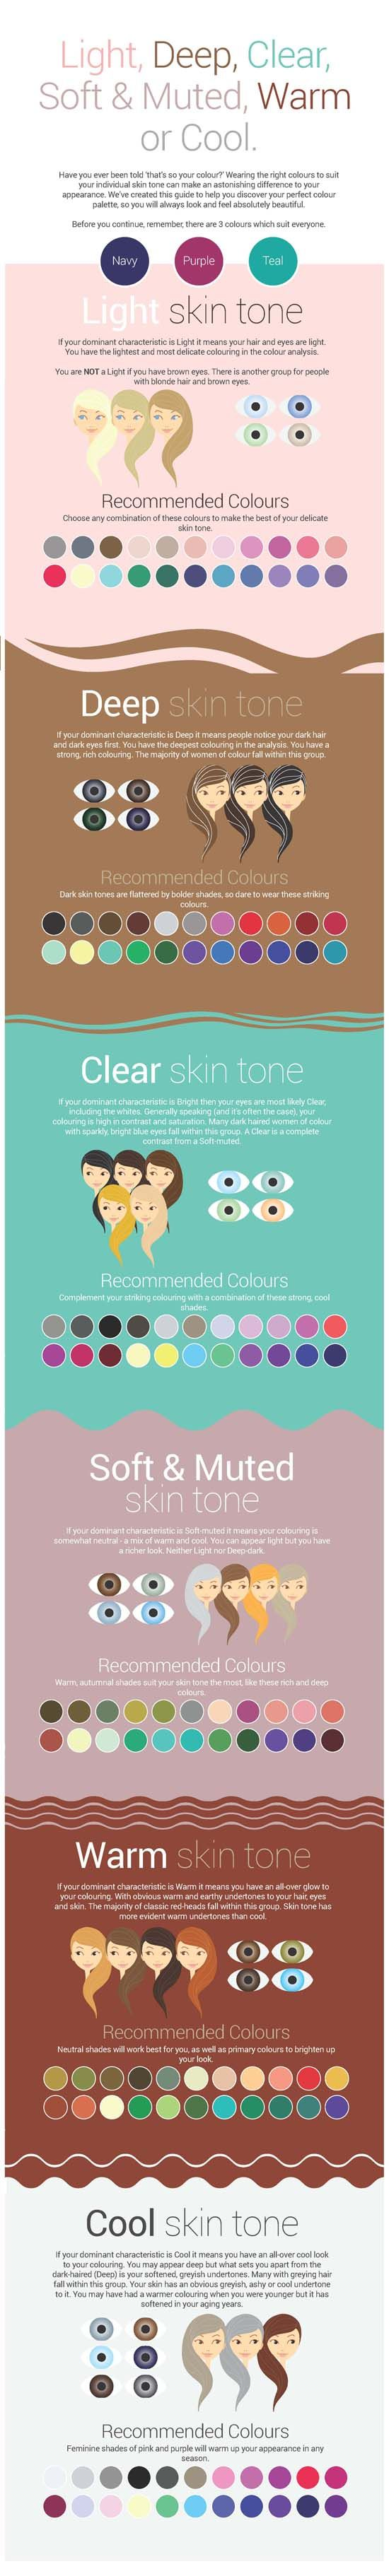 """Disclosure: This post may contain affiliate links, which means we may receive a commission if you click a link and purchase something. Please check out our privacy policy for more details.We've all heard the phrase """"that's so your color,"""" but discovering the right color palette for your complexion can really transform the way you dress.…"""